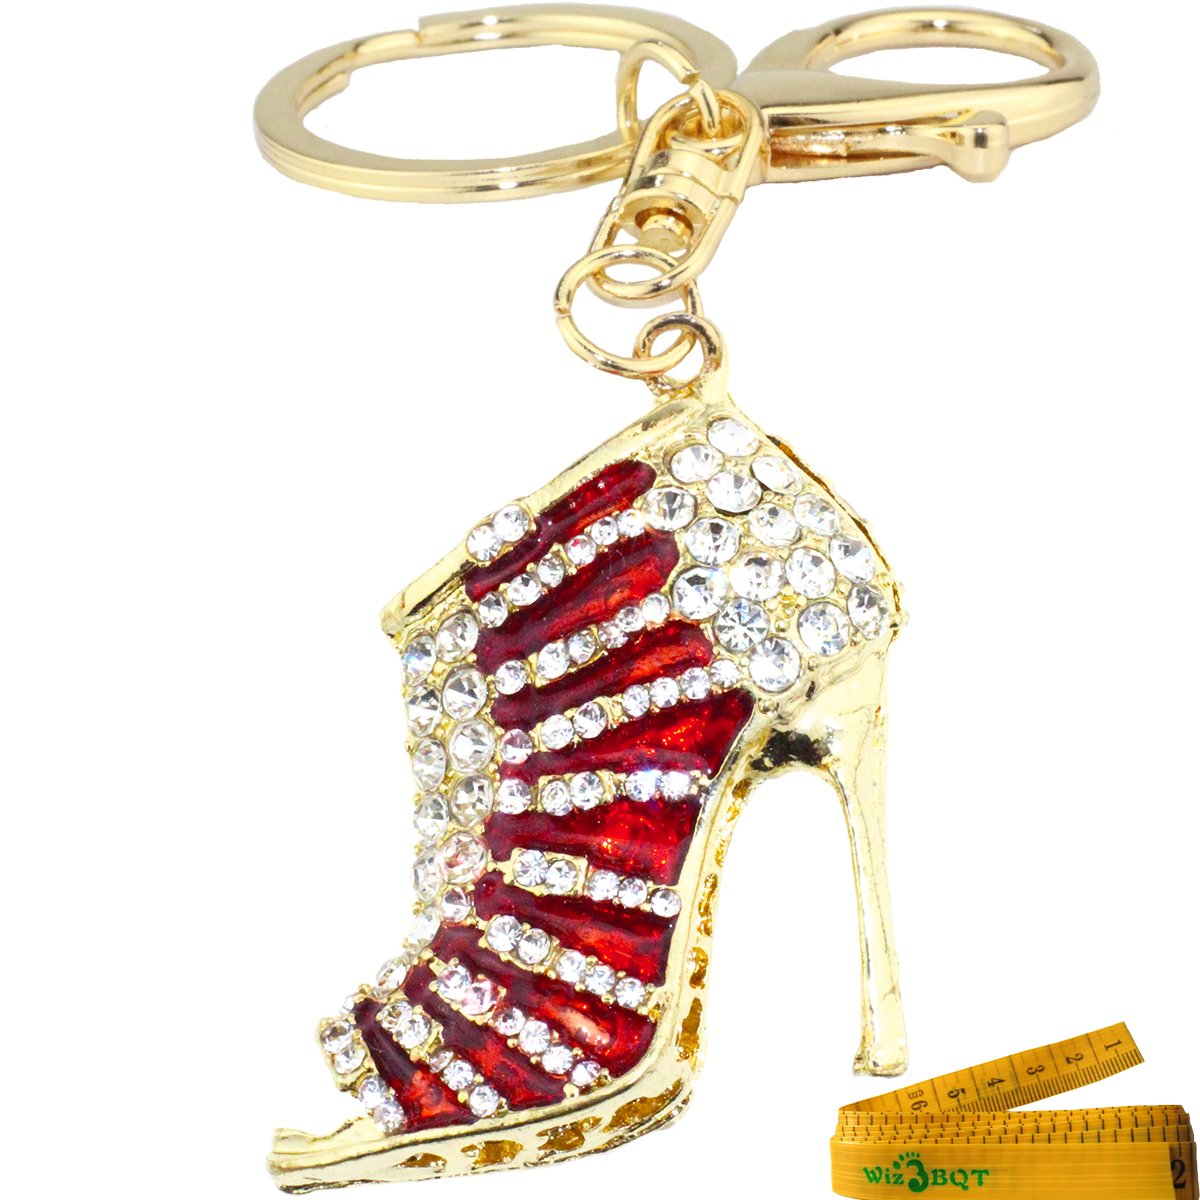 b9eabd4a6 Amazon.com   Bling Bling Sandal Shaped Crystal Rhinestone Enamel Graven 3D  Cubic Metal Keychain Car Phone Purse Bag Decoration Holiday Gift (Red)    Office ...